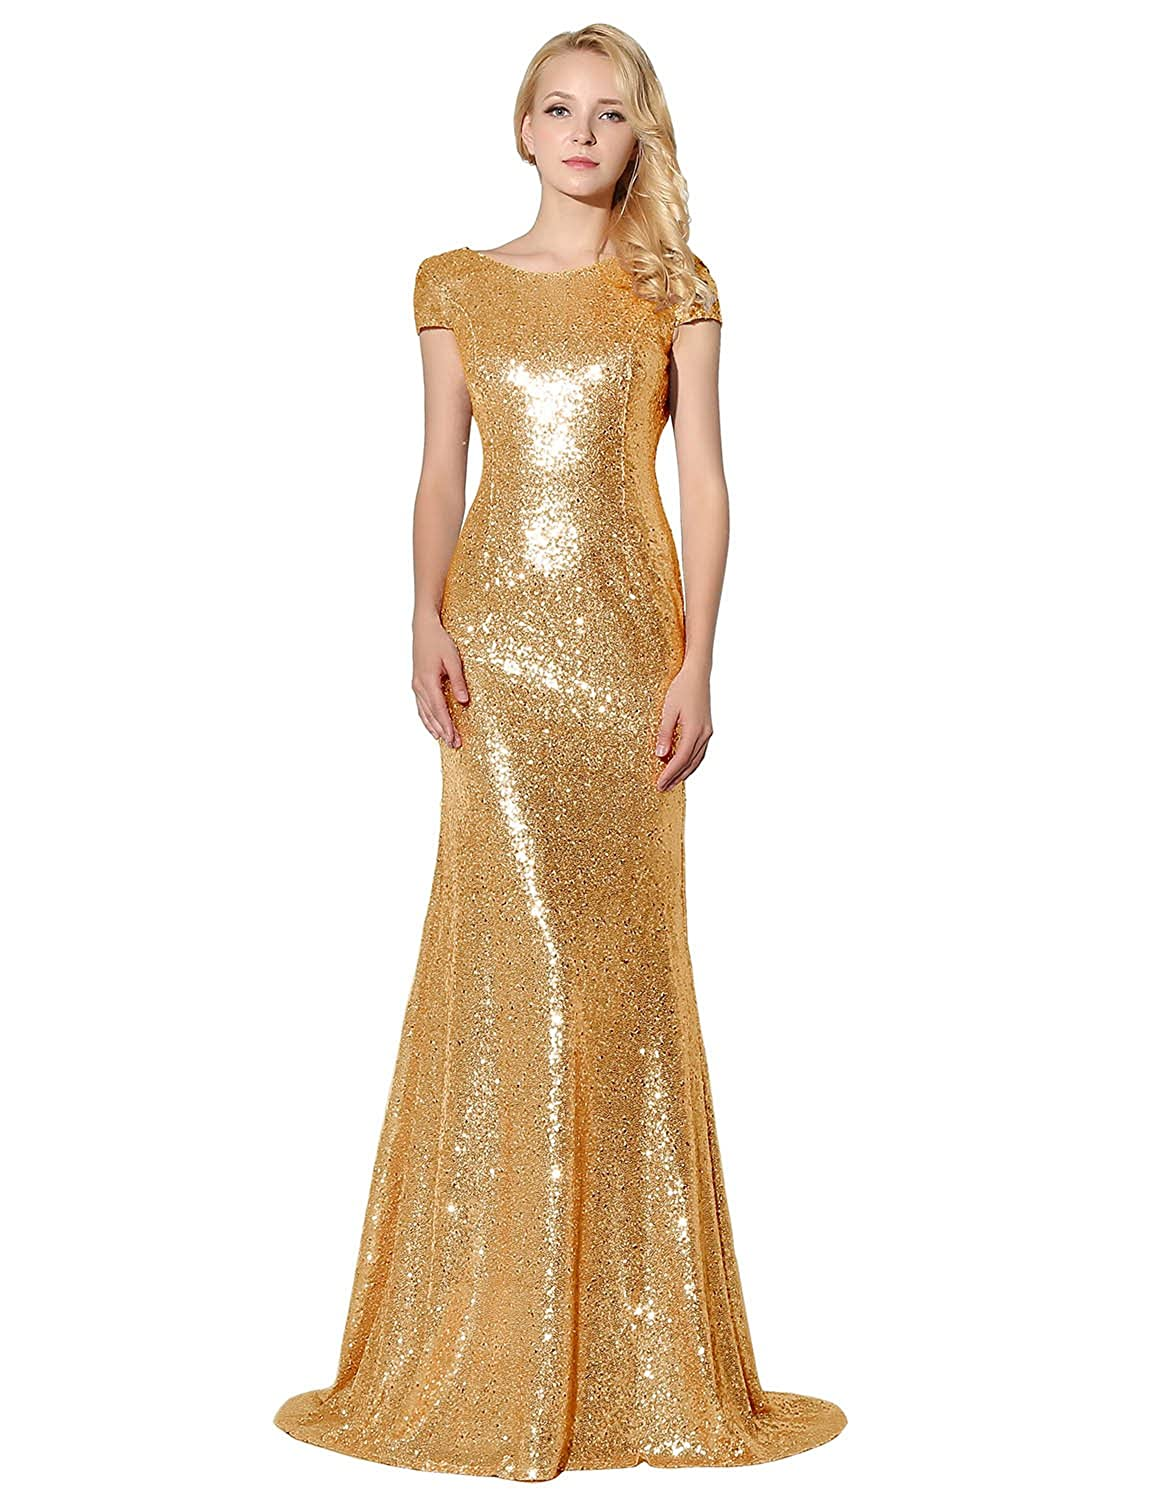 Clearbridal Women's Formal Mermaid Sequine Prom Evening Dress Long Sweep Train Bridesmaid Gown SD197, Gold, UK 16